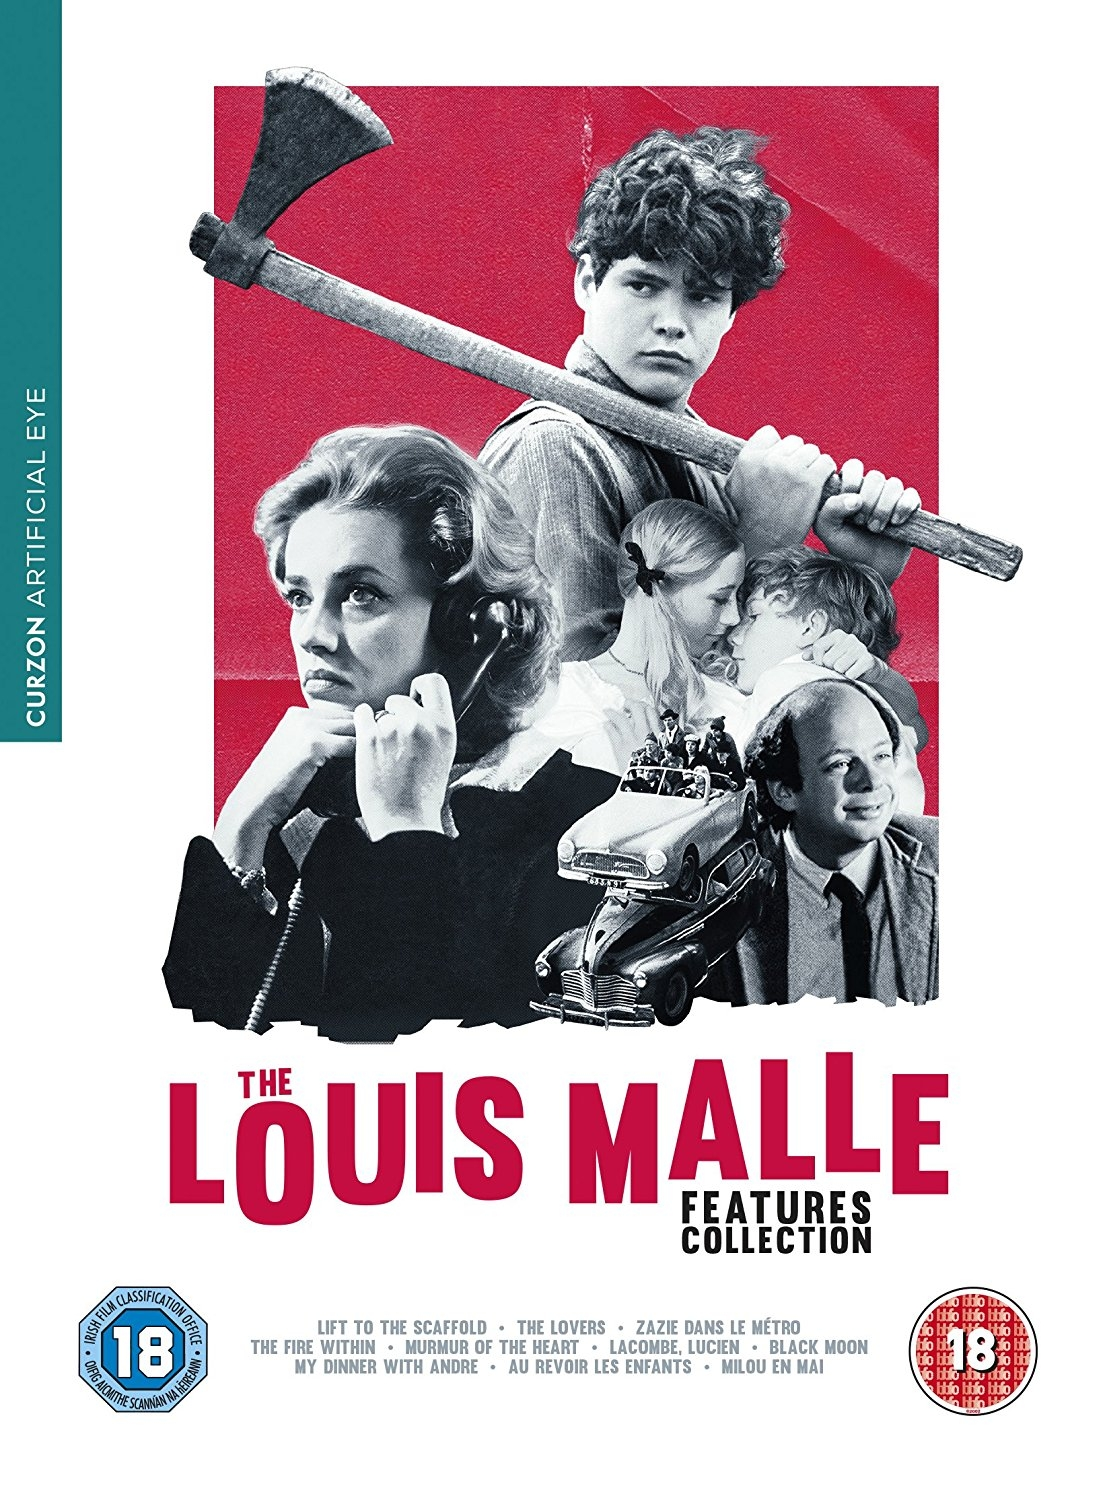 Buy The Louis Malle Features Collection (DVD Box Set)